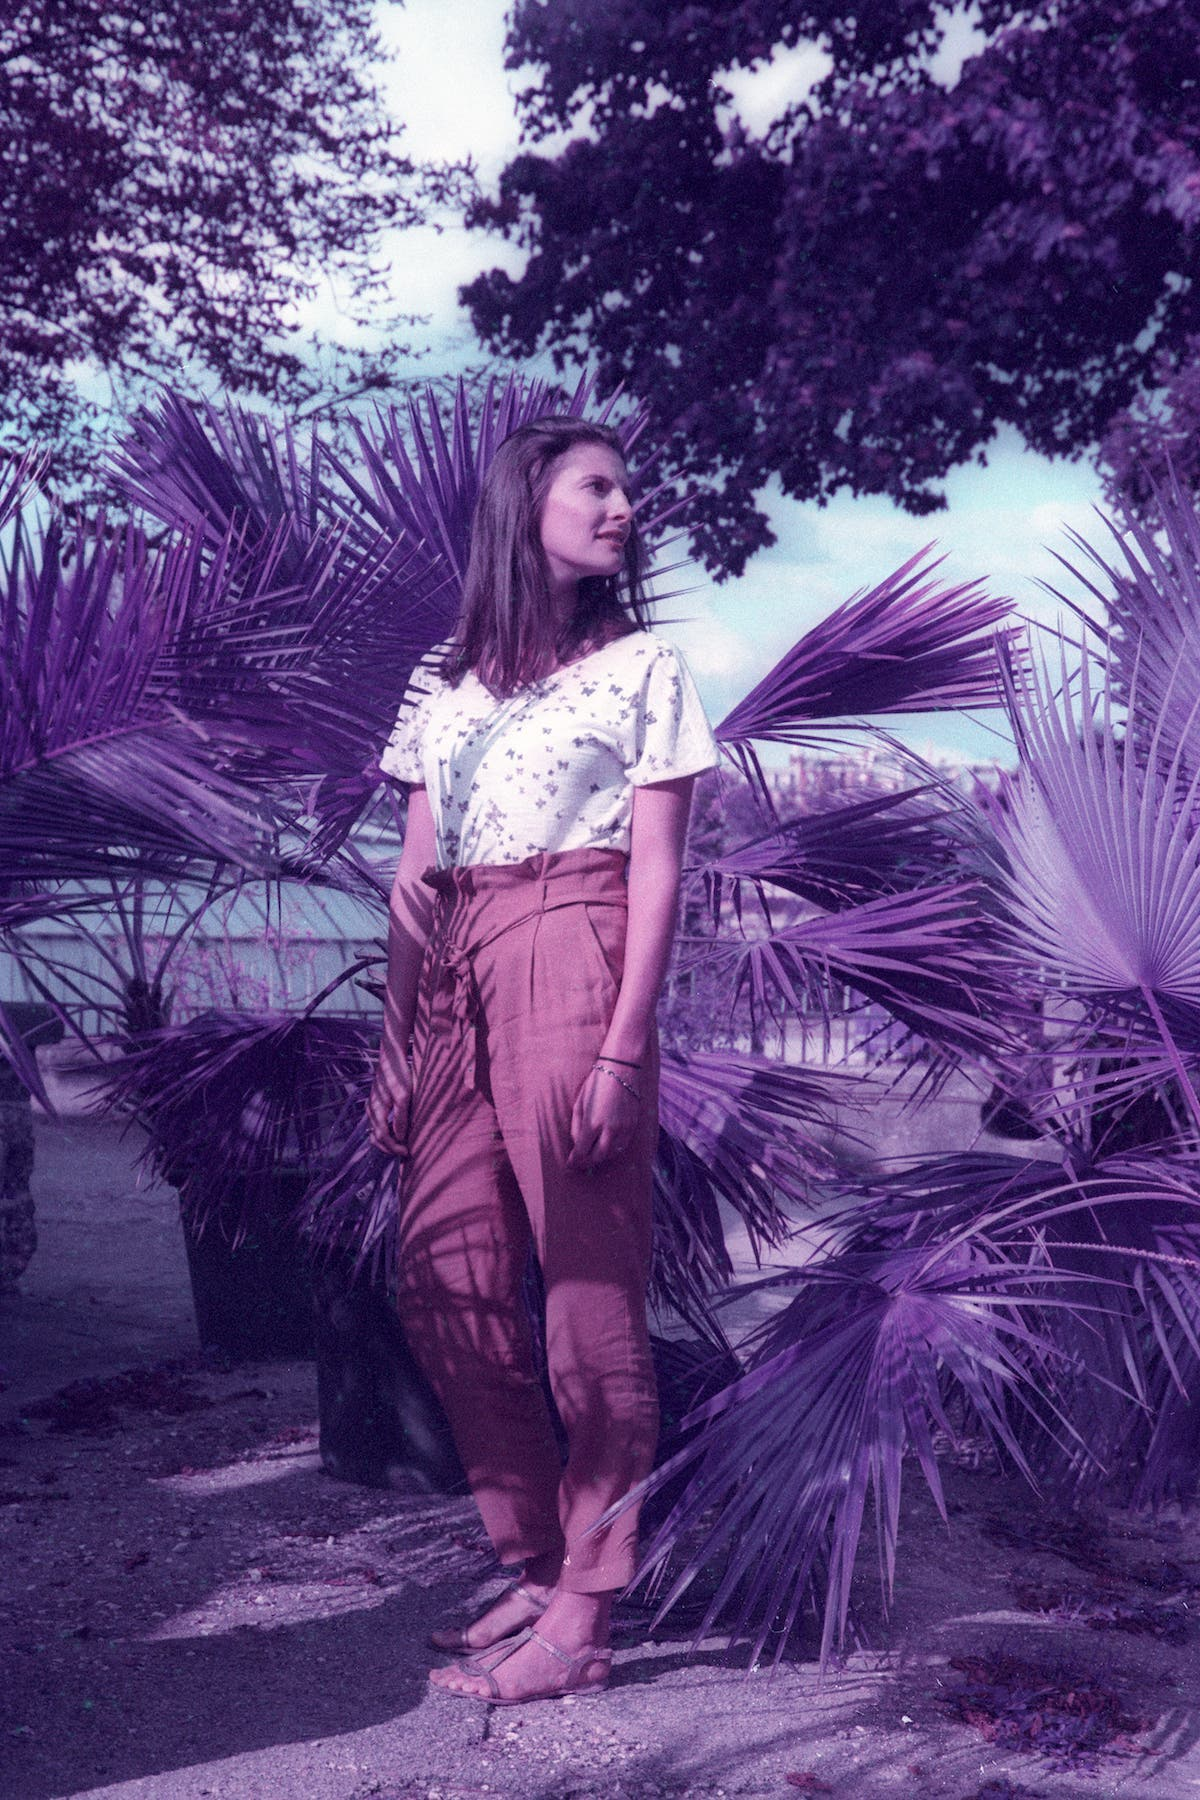 Stéphane Maugendre Creates a Trippy Paradise Using LomoChrome Purple